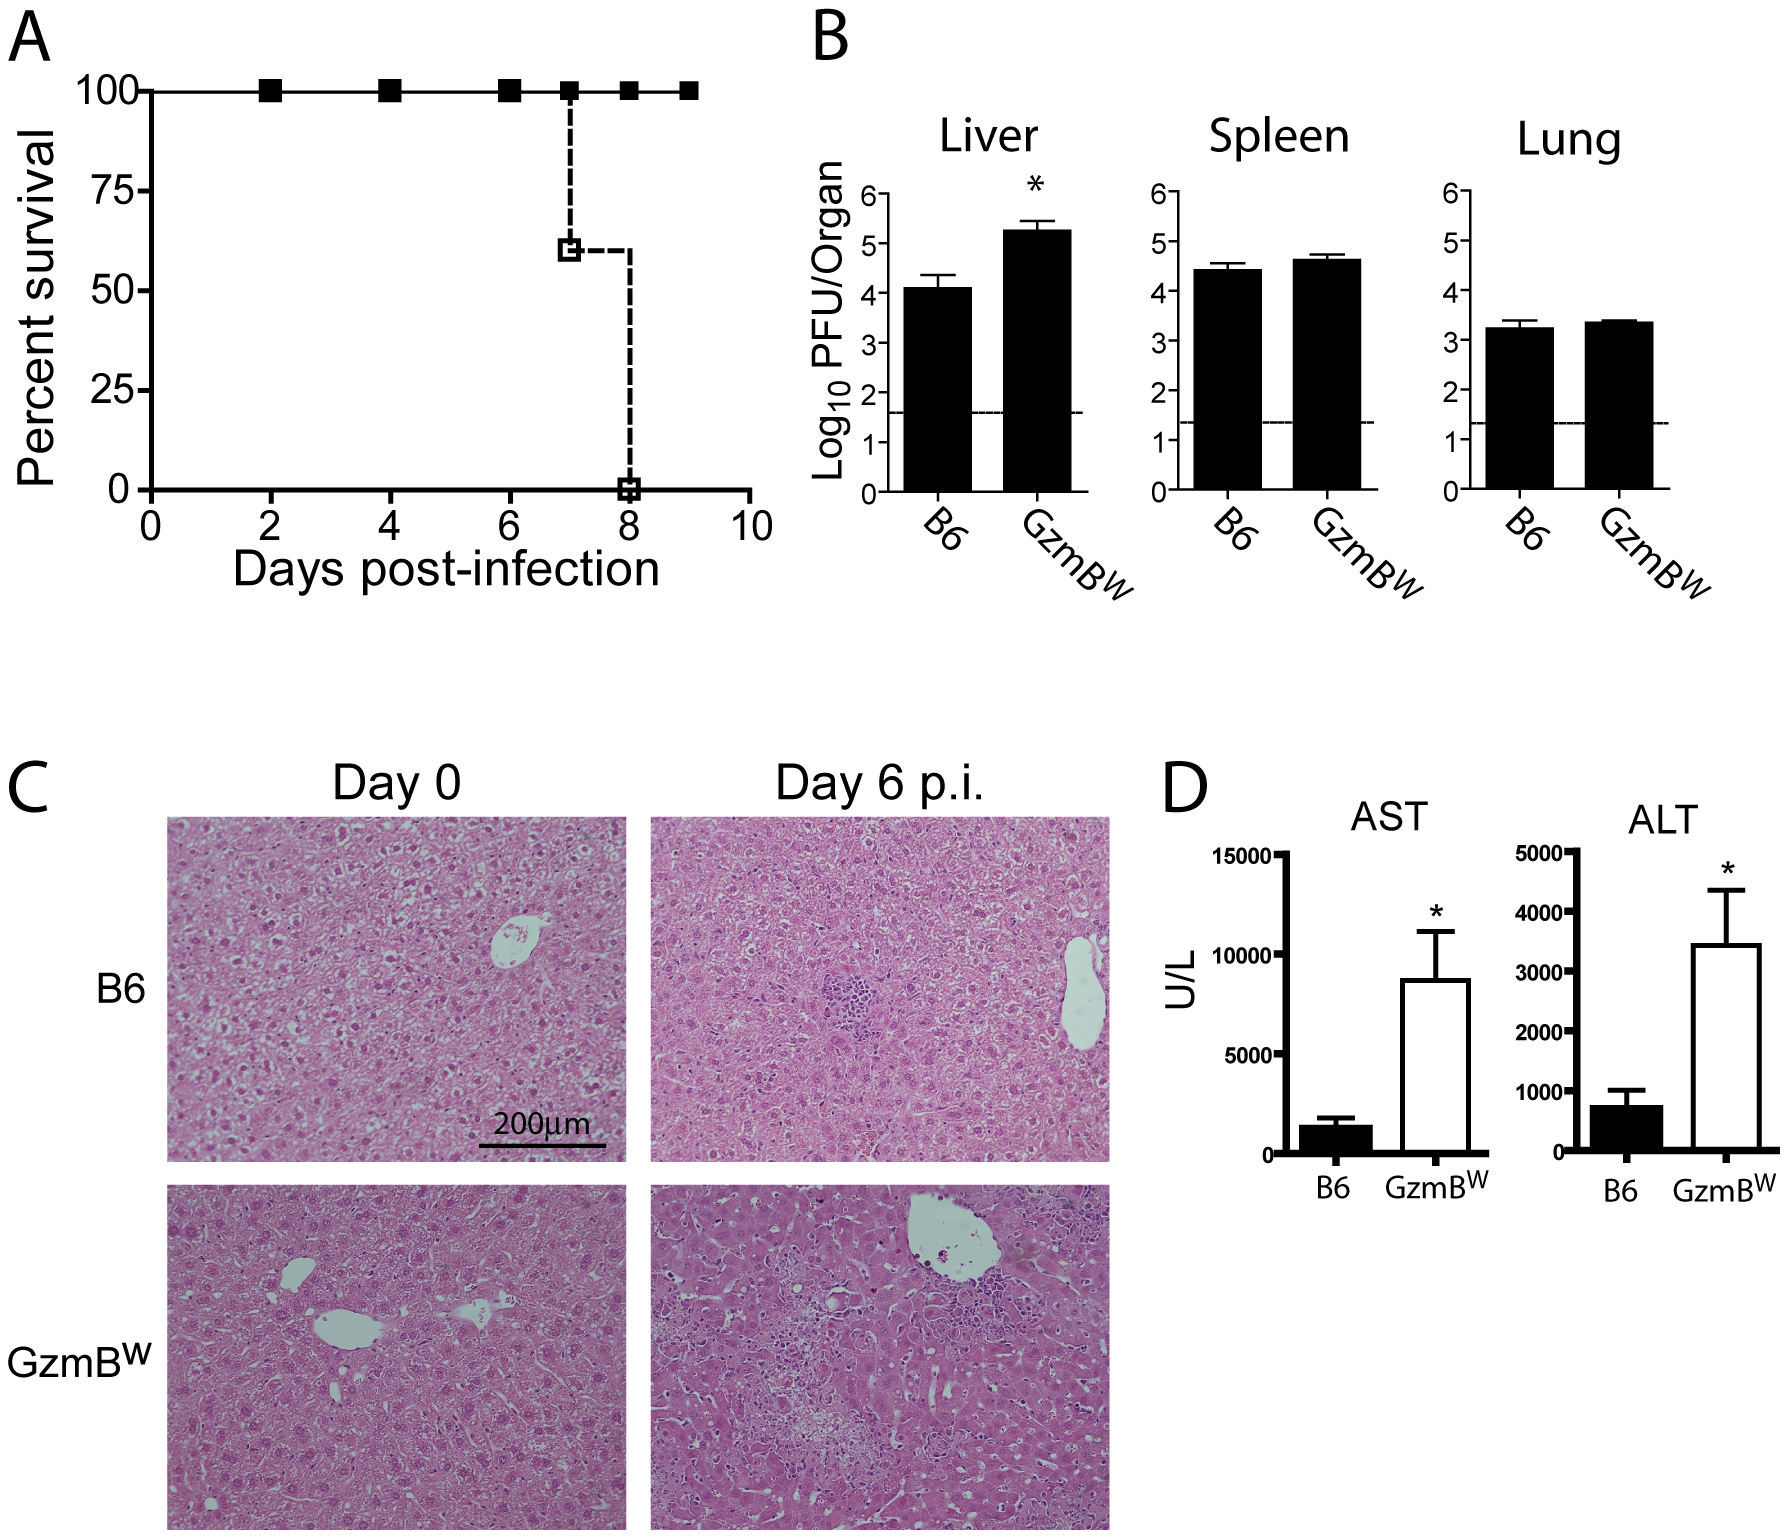 GzmB<sup>W/W</sup> mice are sensitive to infection with Δm157 MCMV.